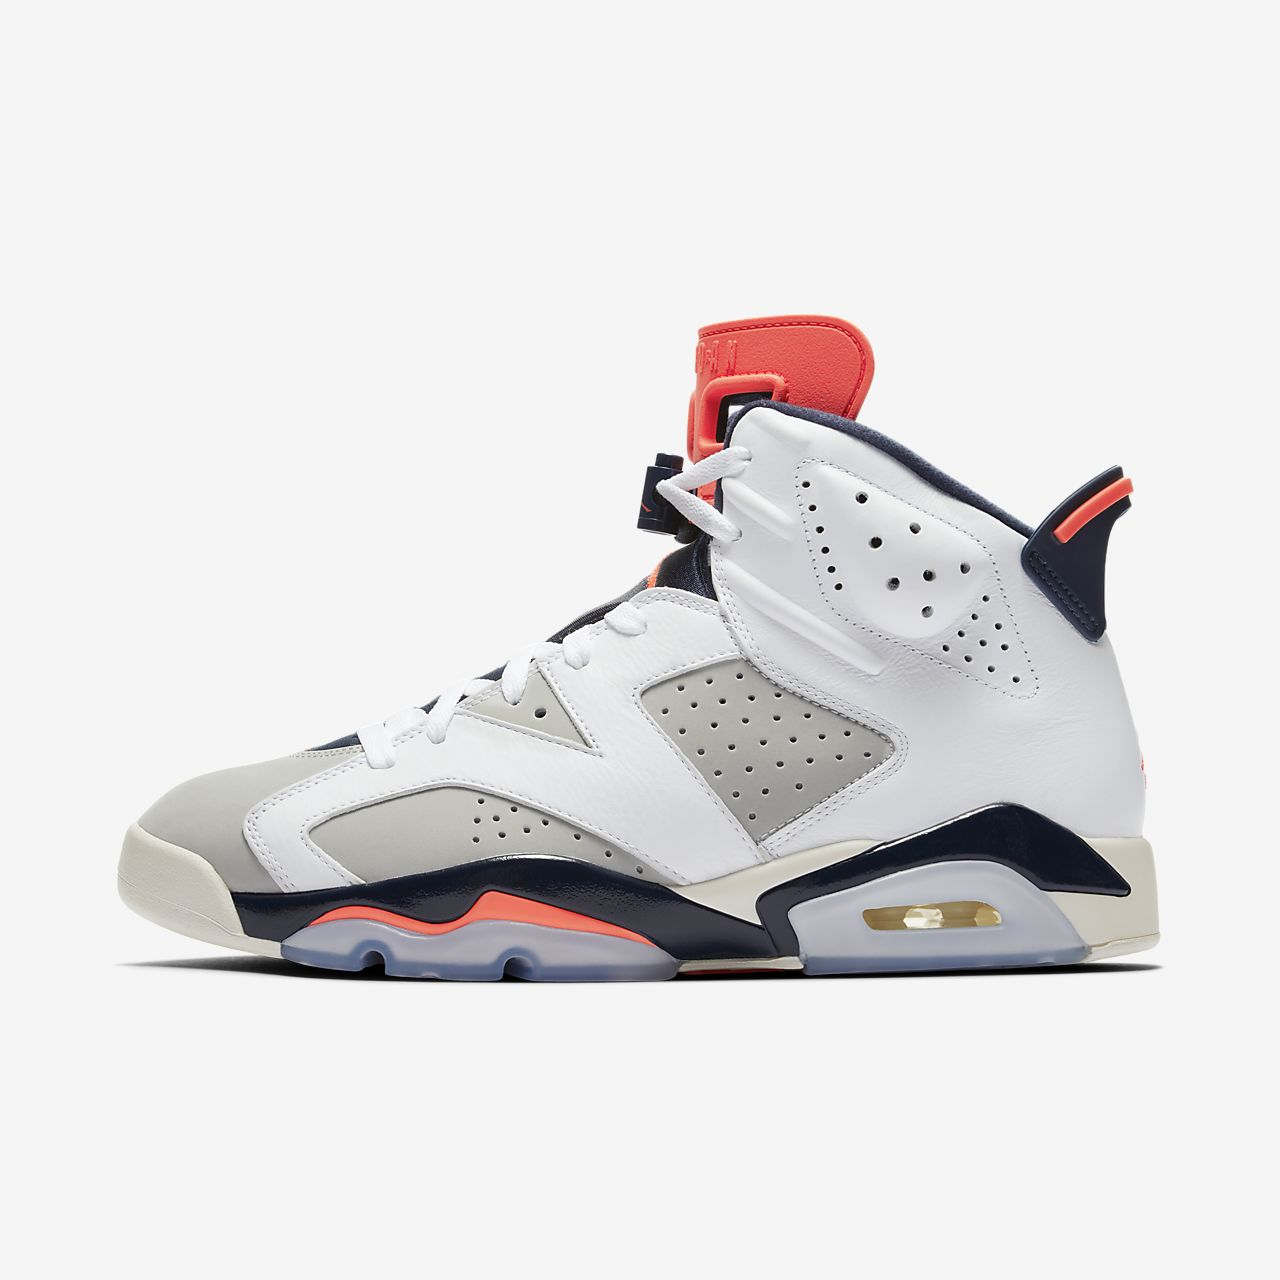 new style c9660 b6dda Air Jordan 6 Retro